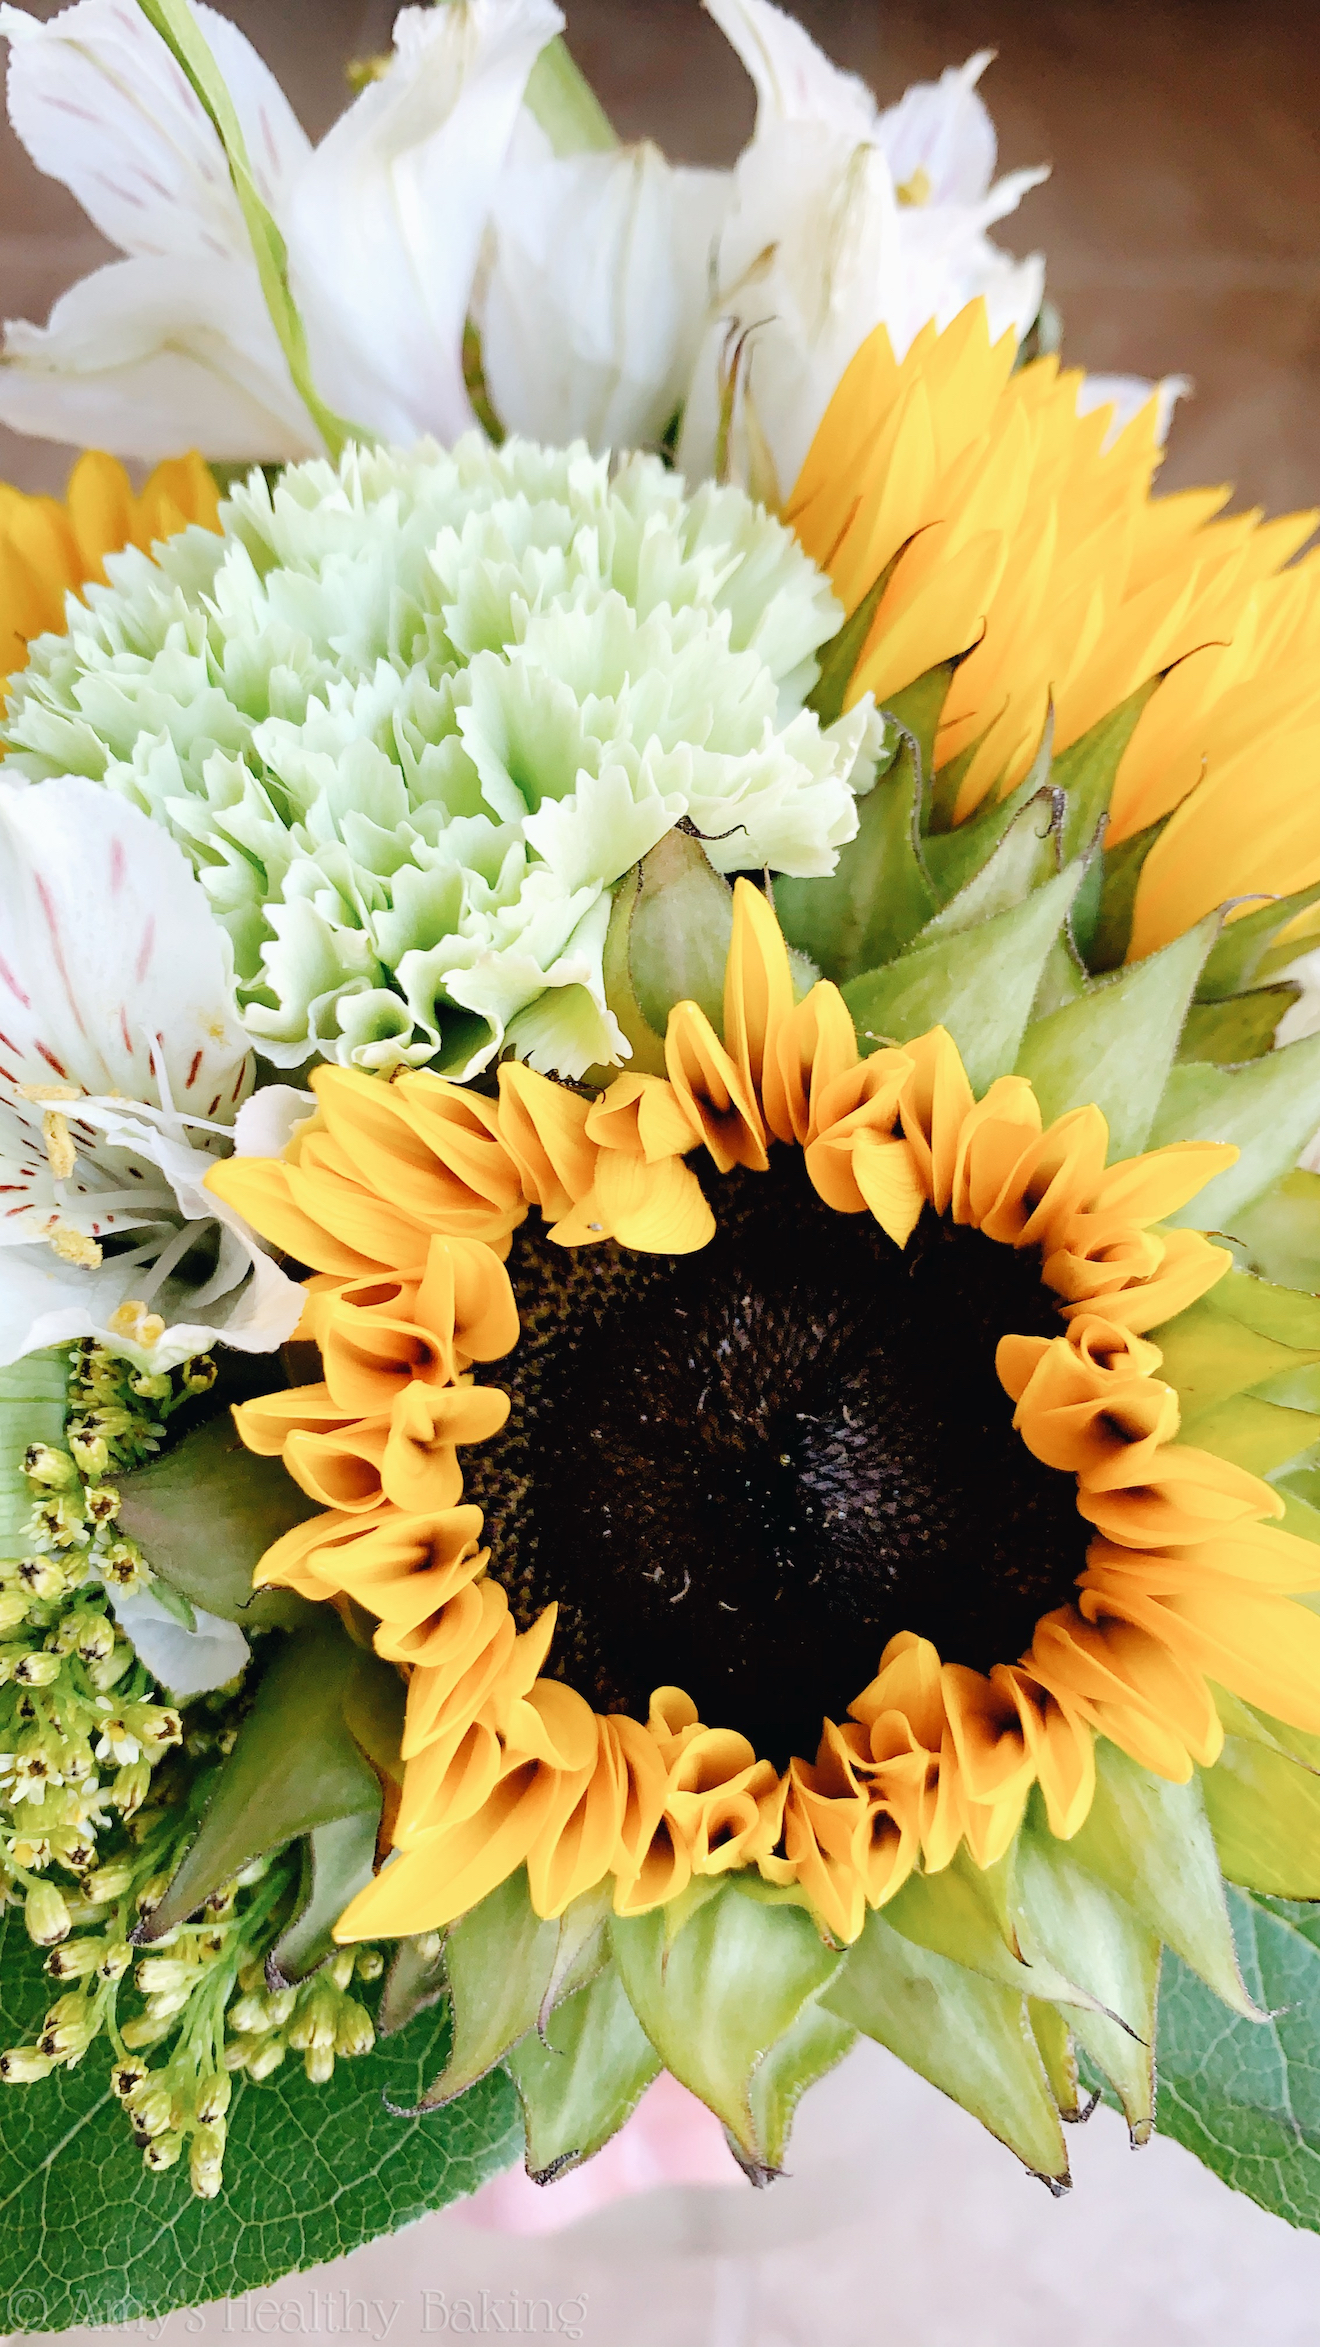 sunflower bouquet & how we may never know how many lives we touch